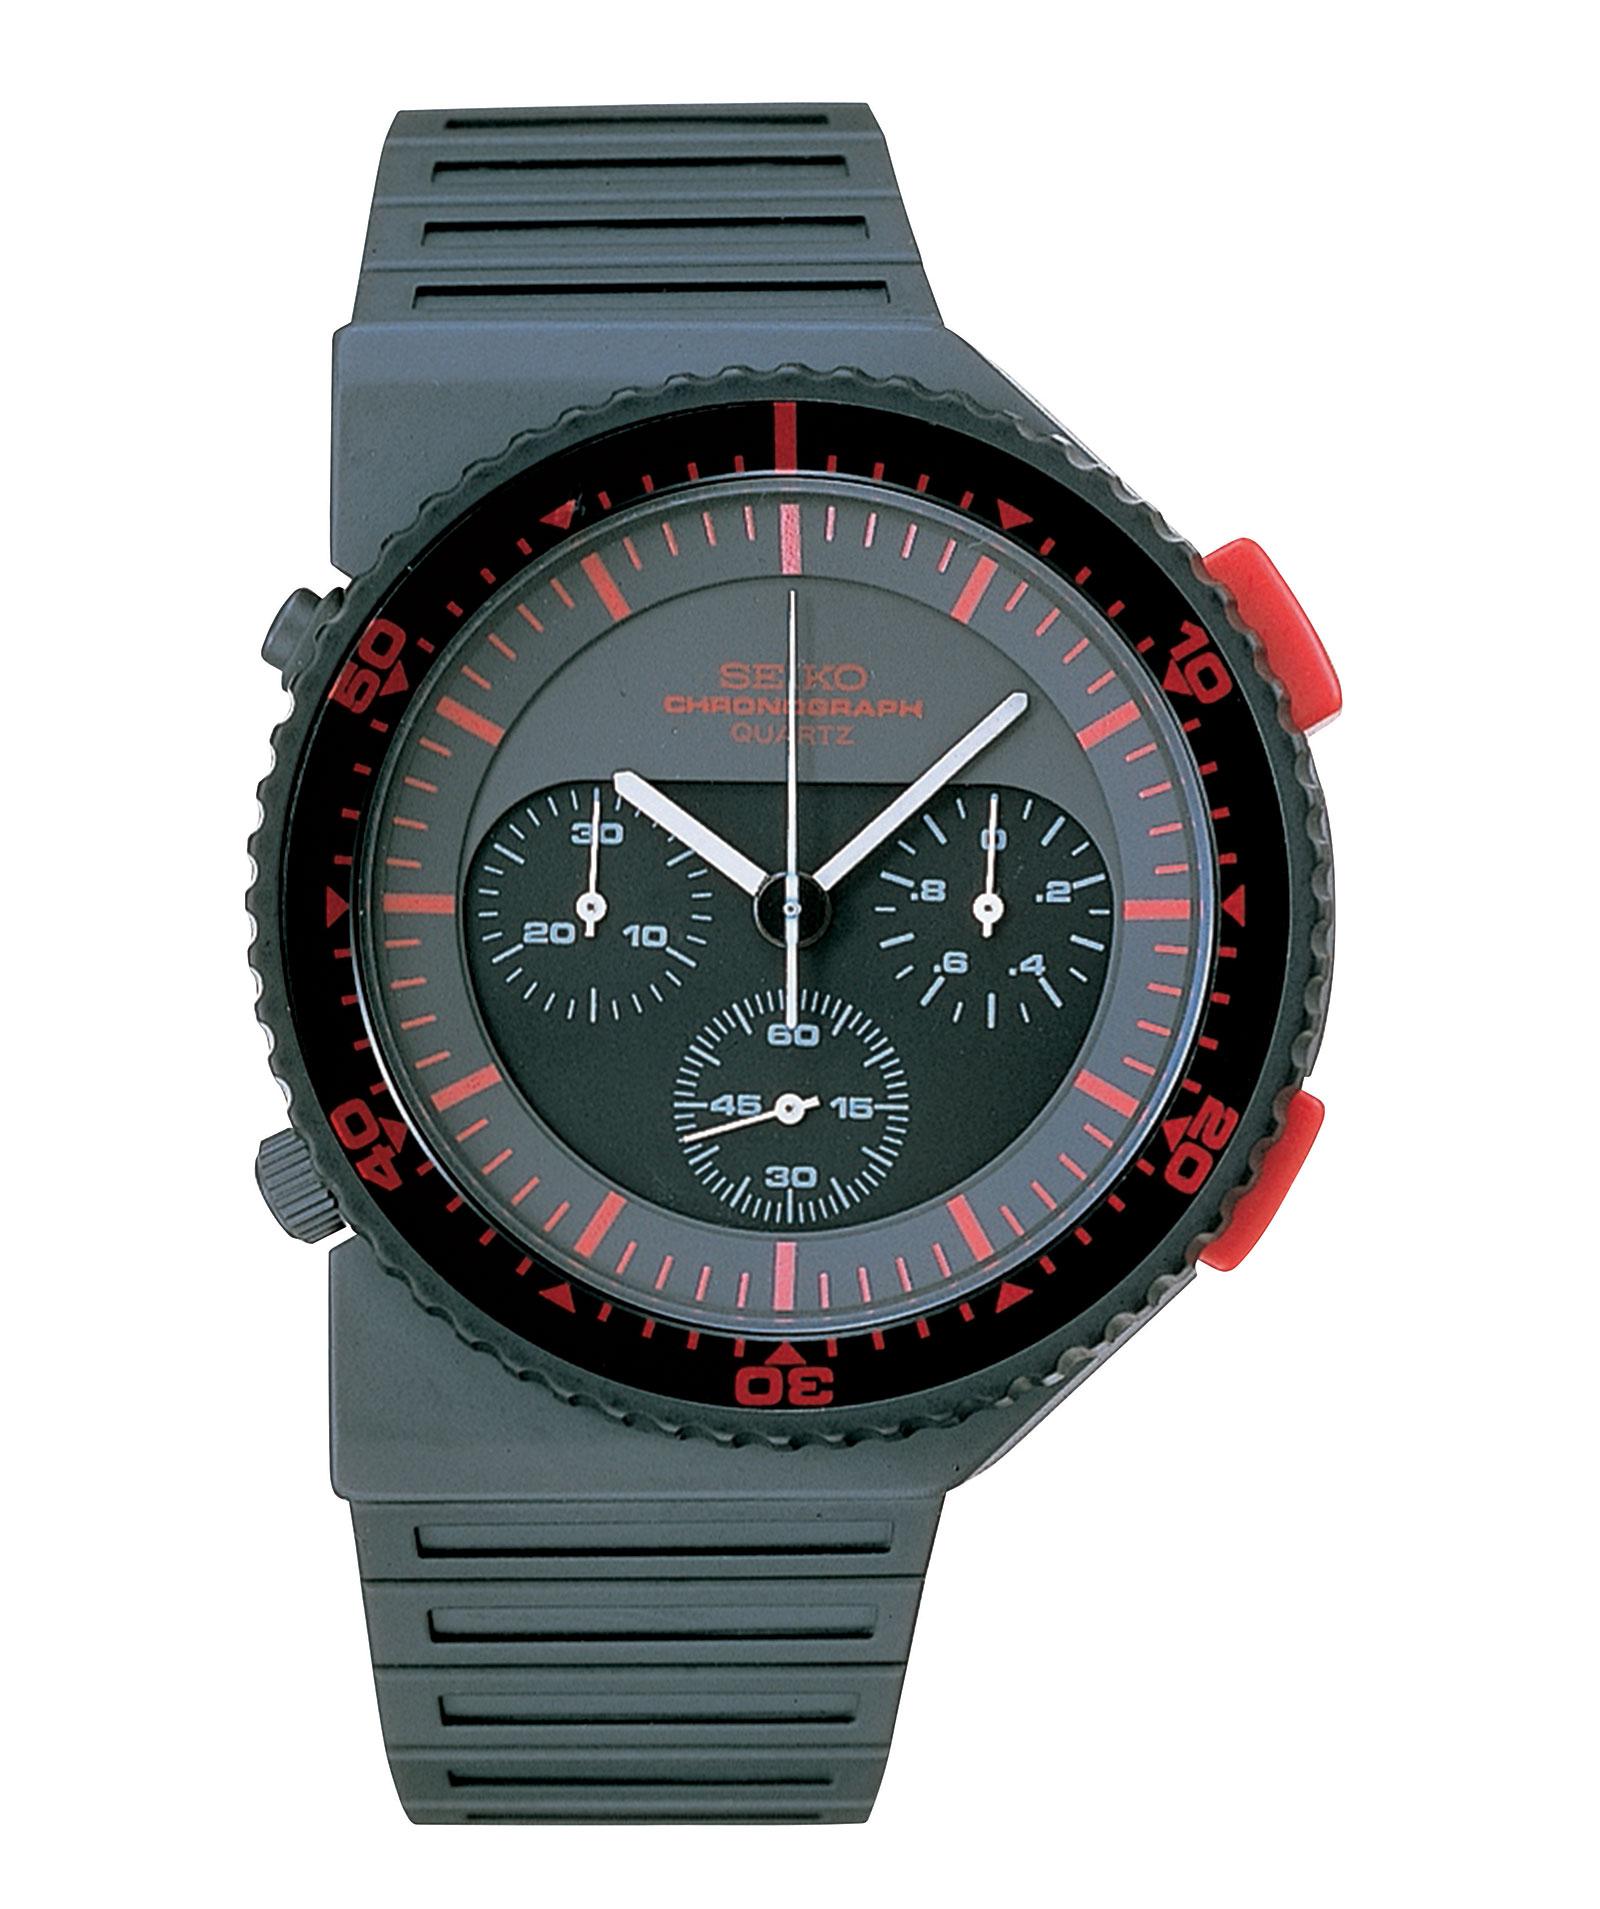 watch alarm solar pvd product pilot watches seiko chronograph black